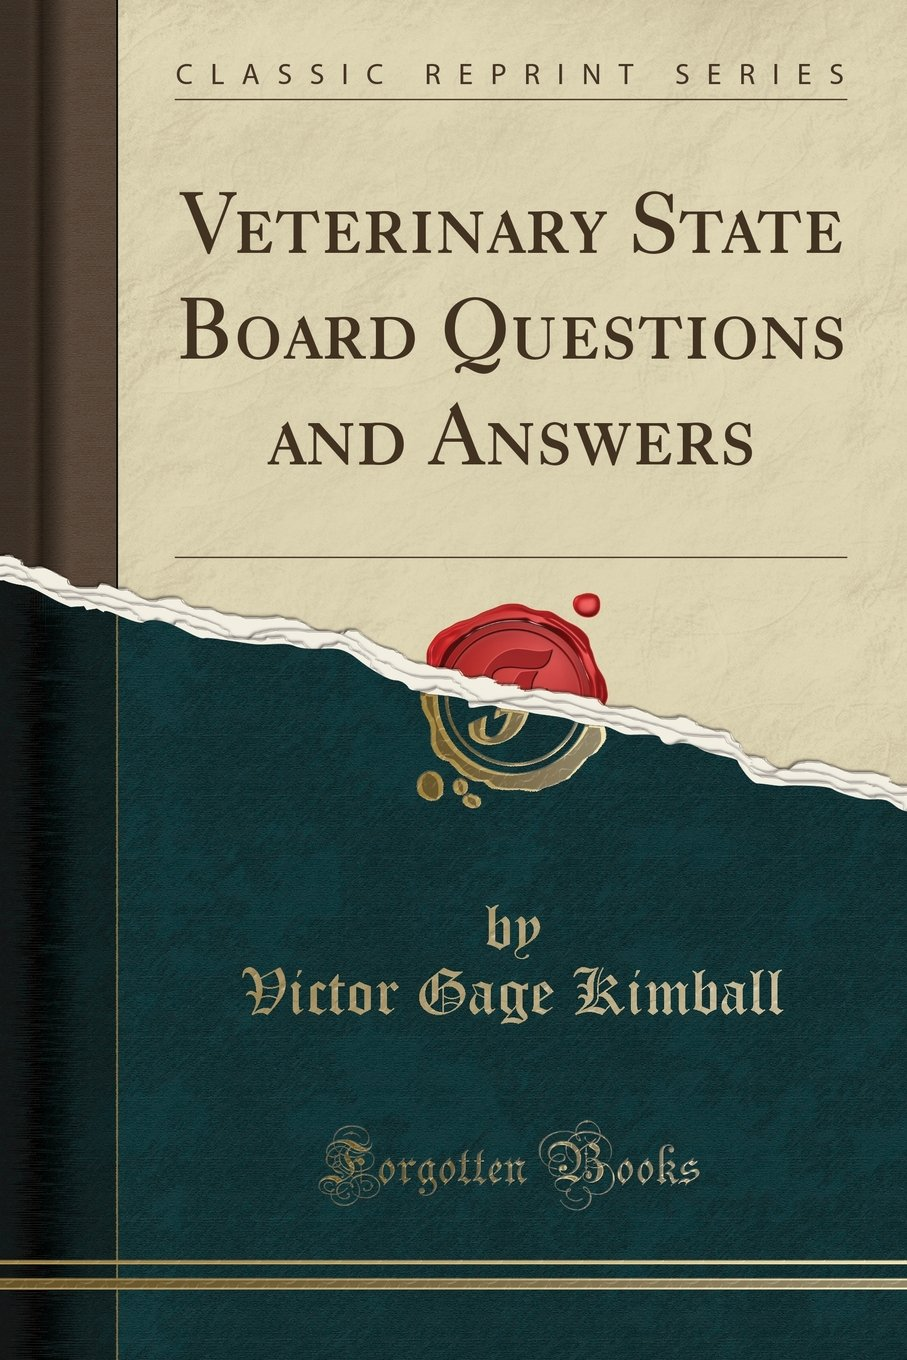 Veterinary State Board Questions and Answers (Classic Reprint) PDF